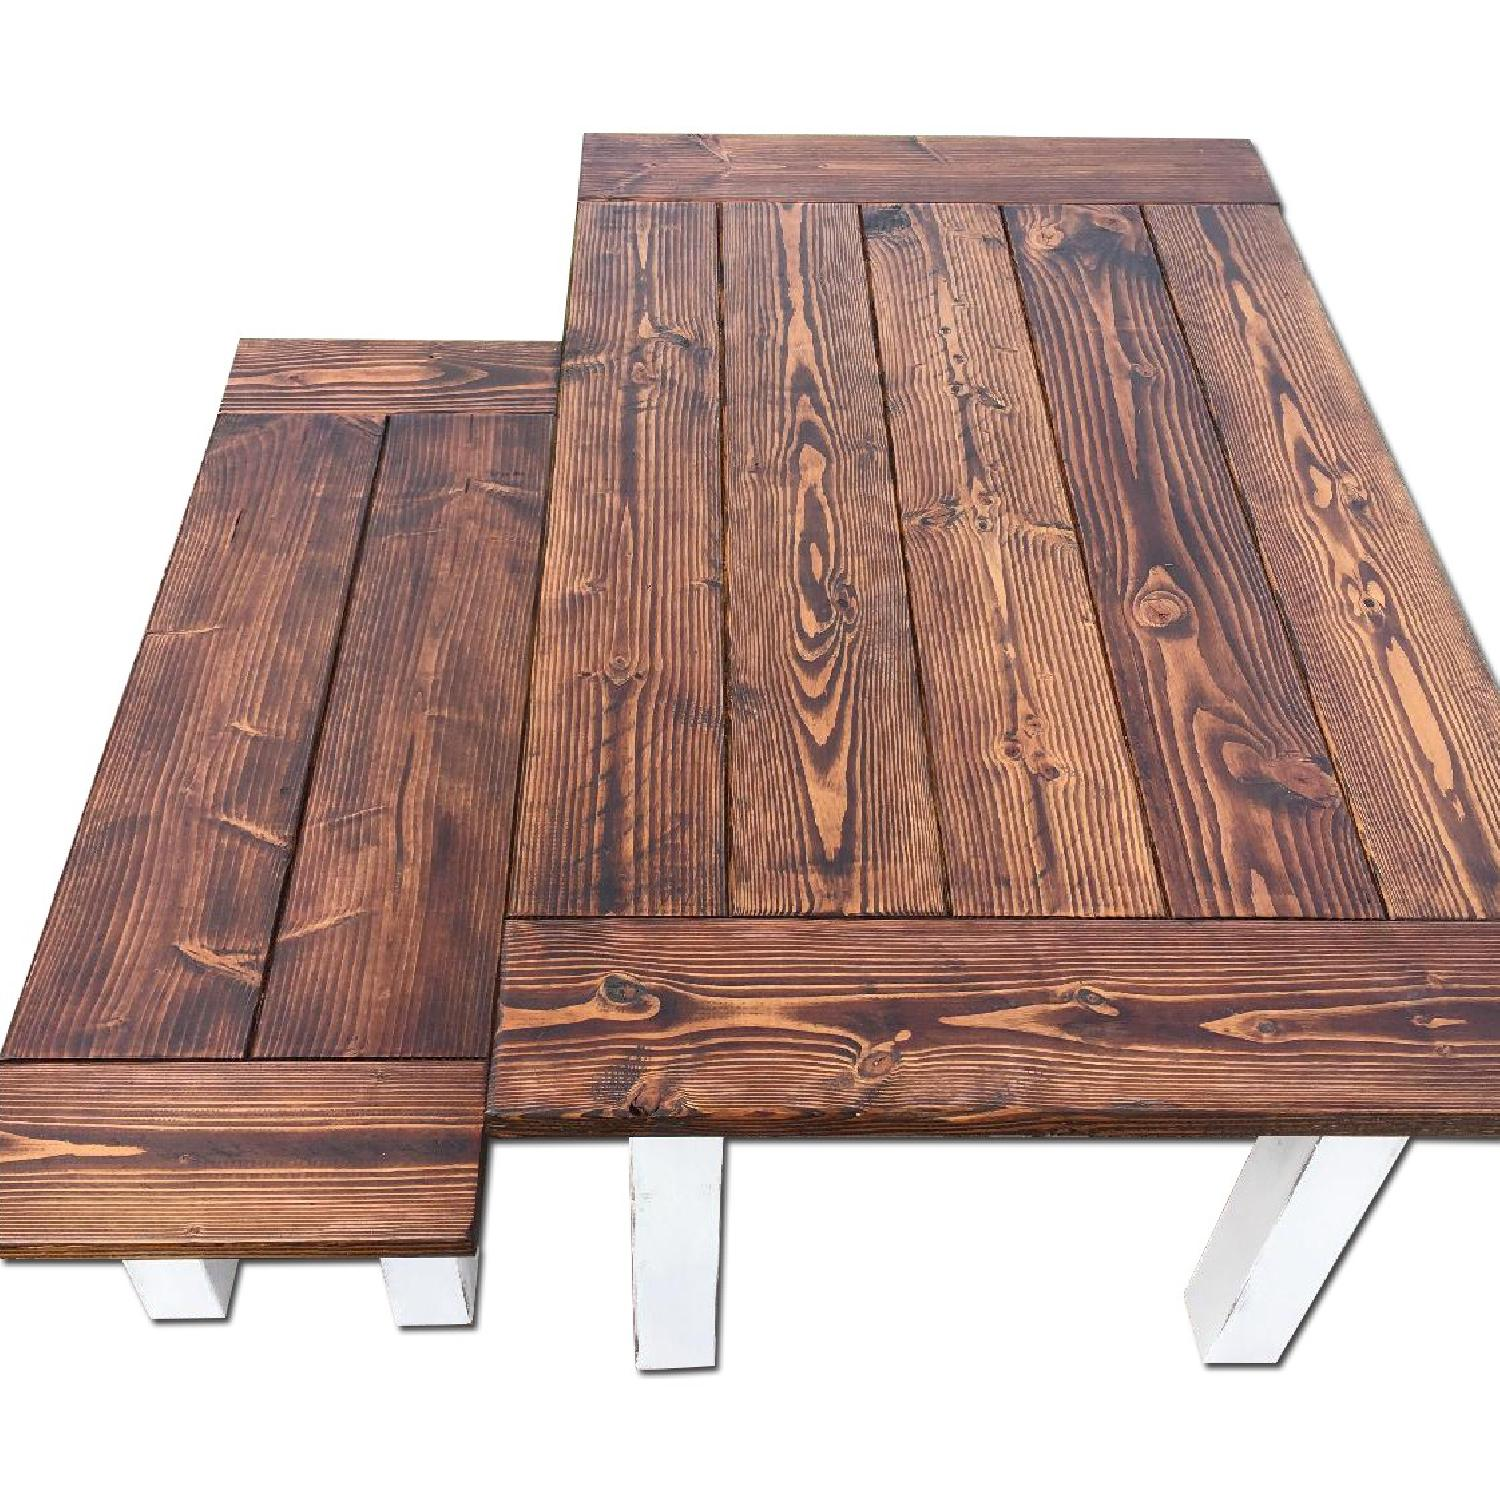 Rustic Farm Table w/ 1 Bench - image-0